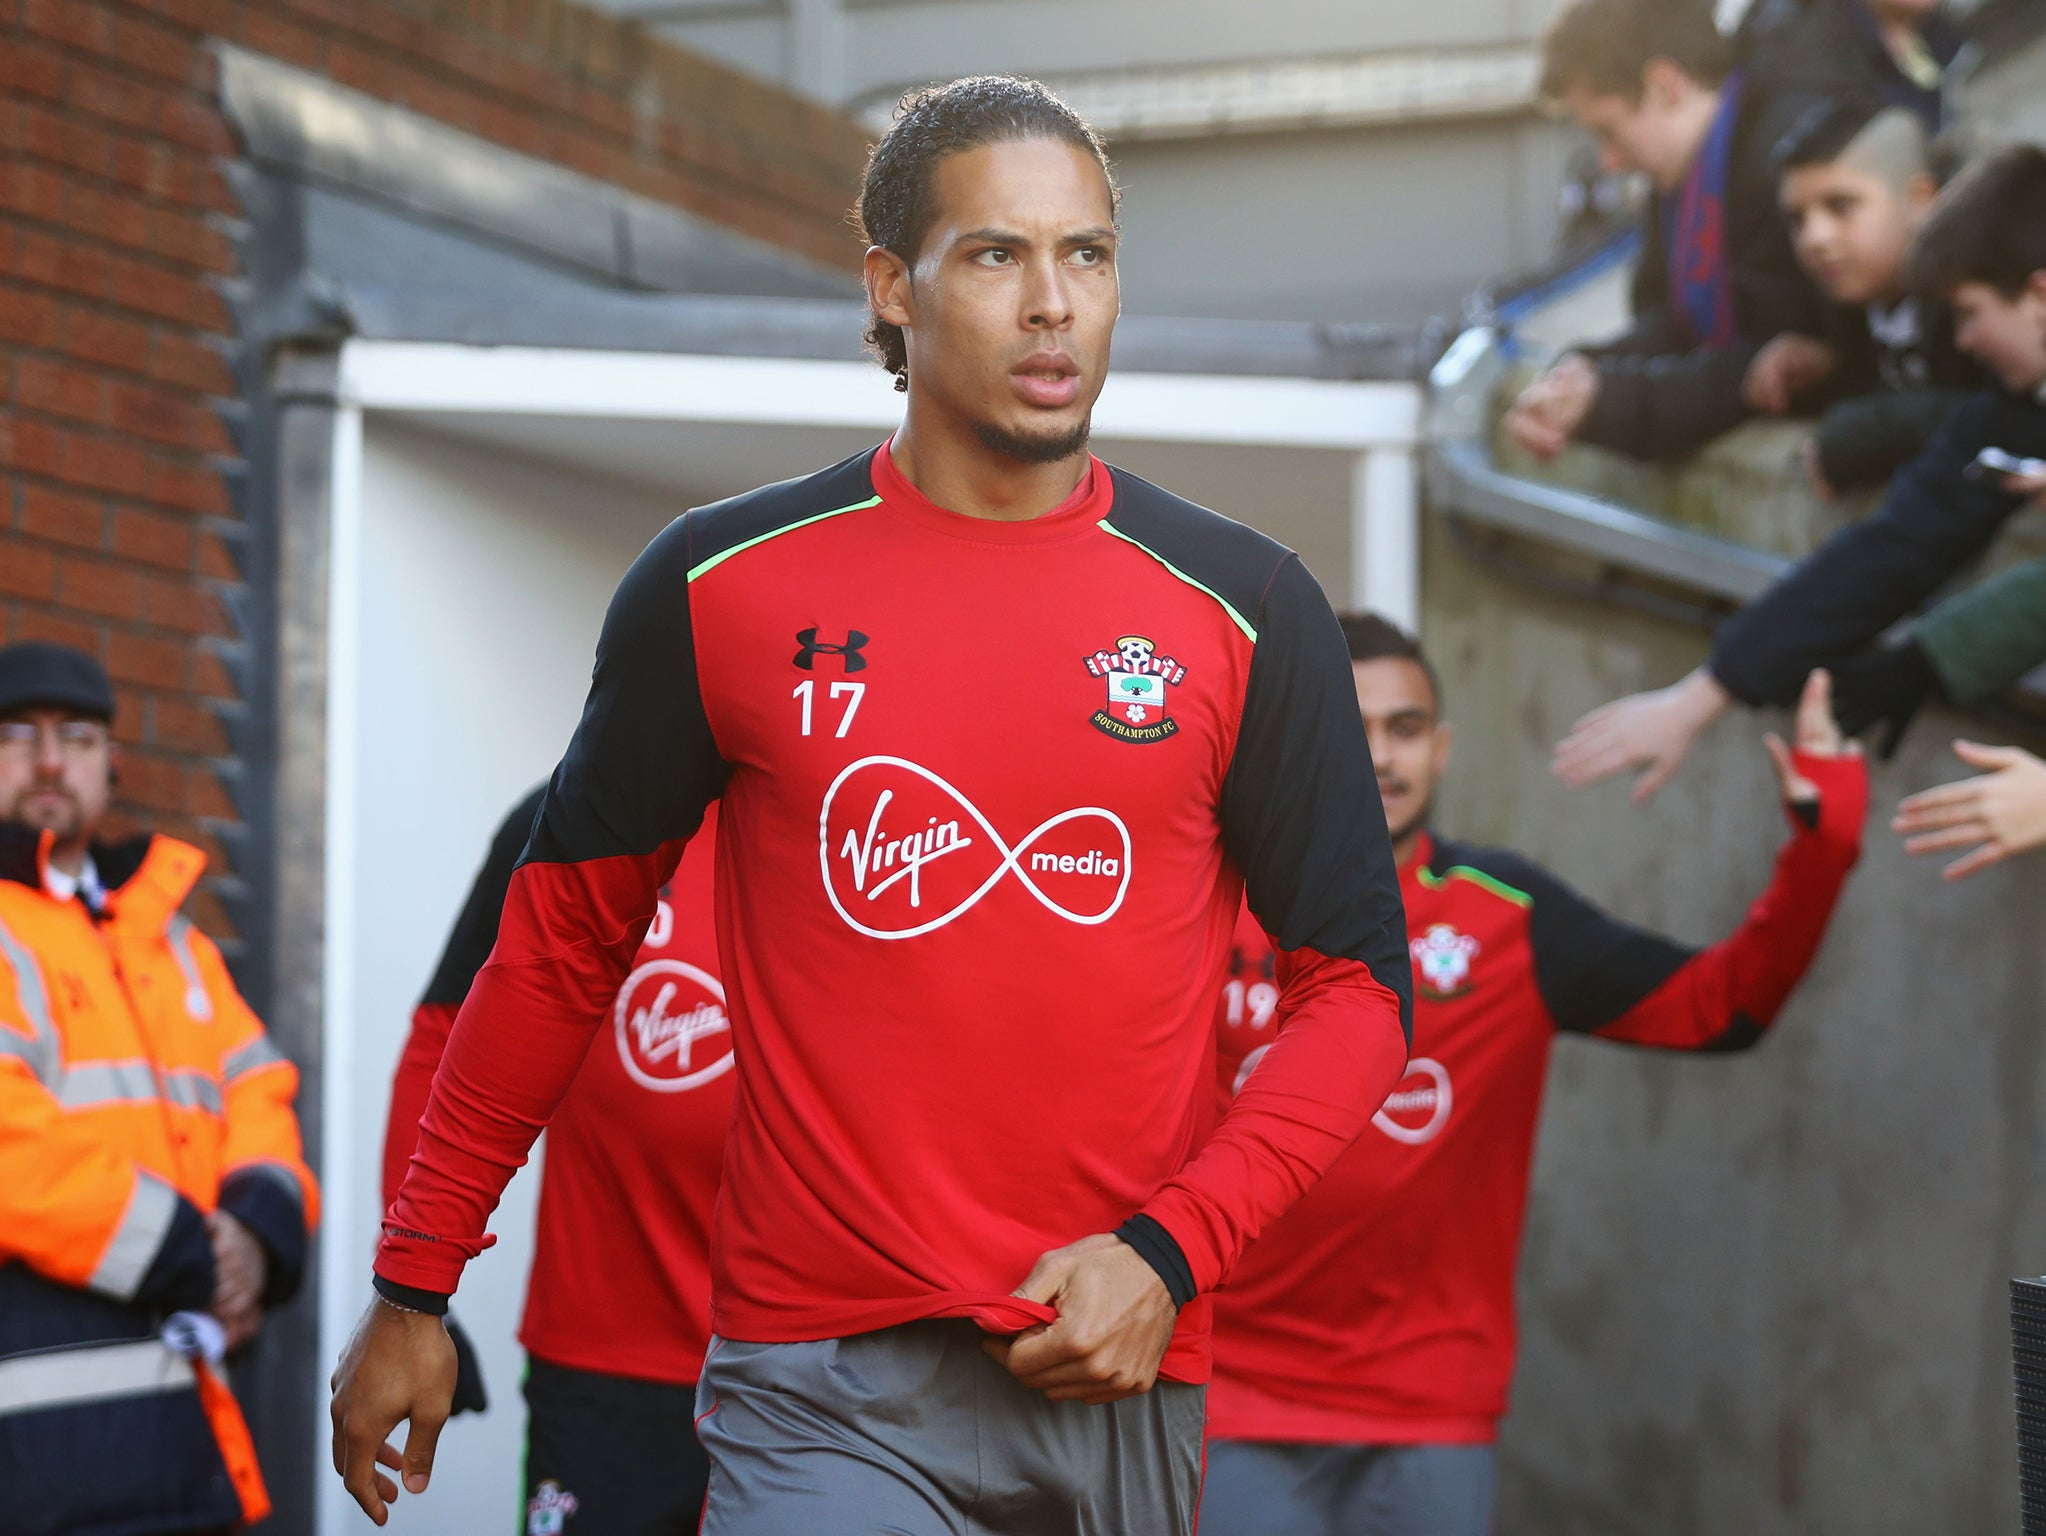 Southampton insist Chelsea and Liverpool target Virgil van Dijk will play 'alongside' new signing Wesley Hoedt